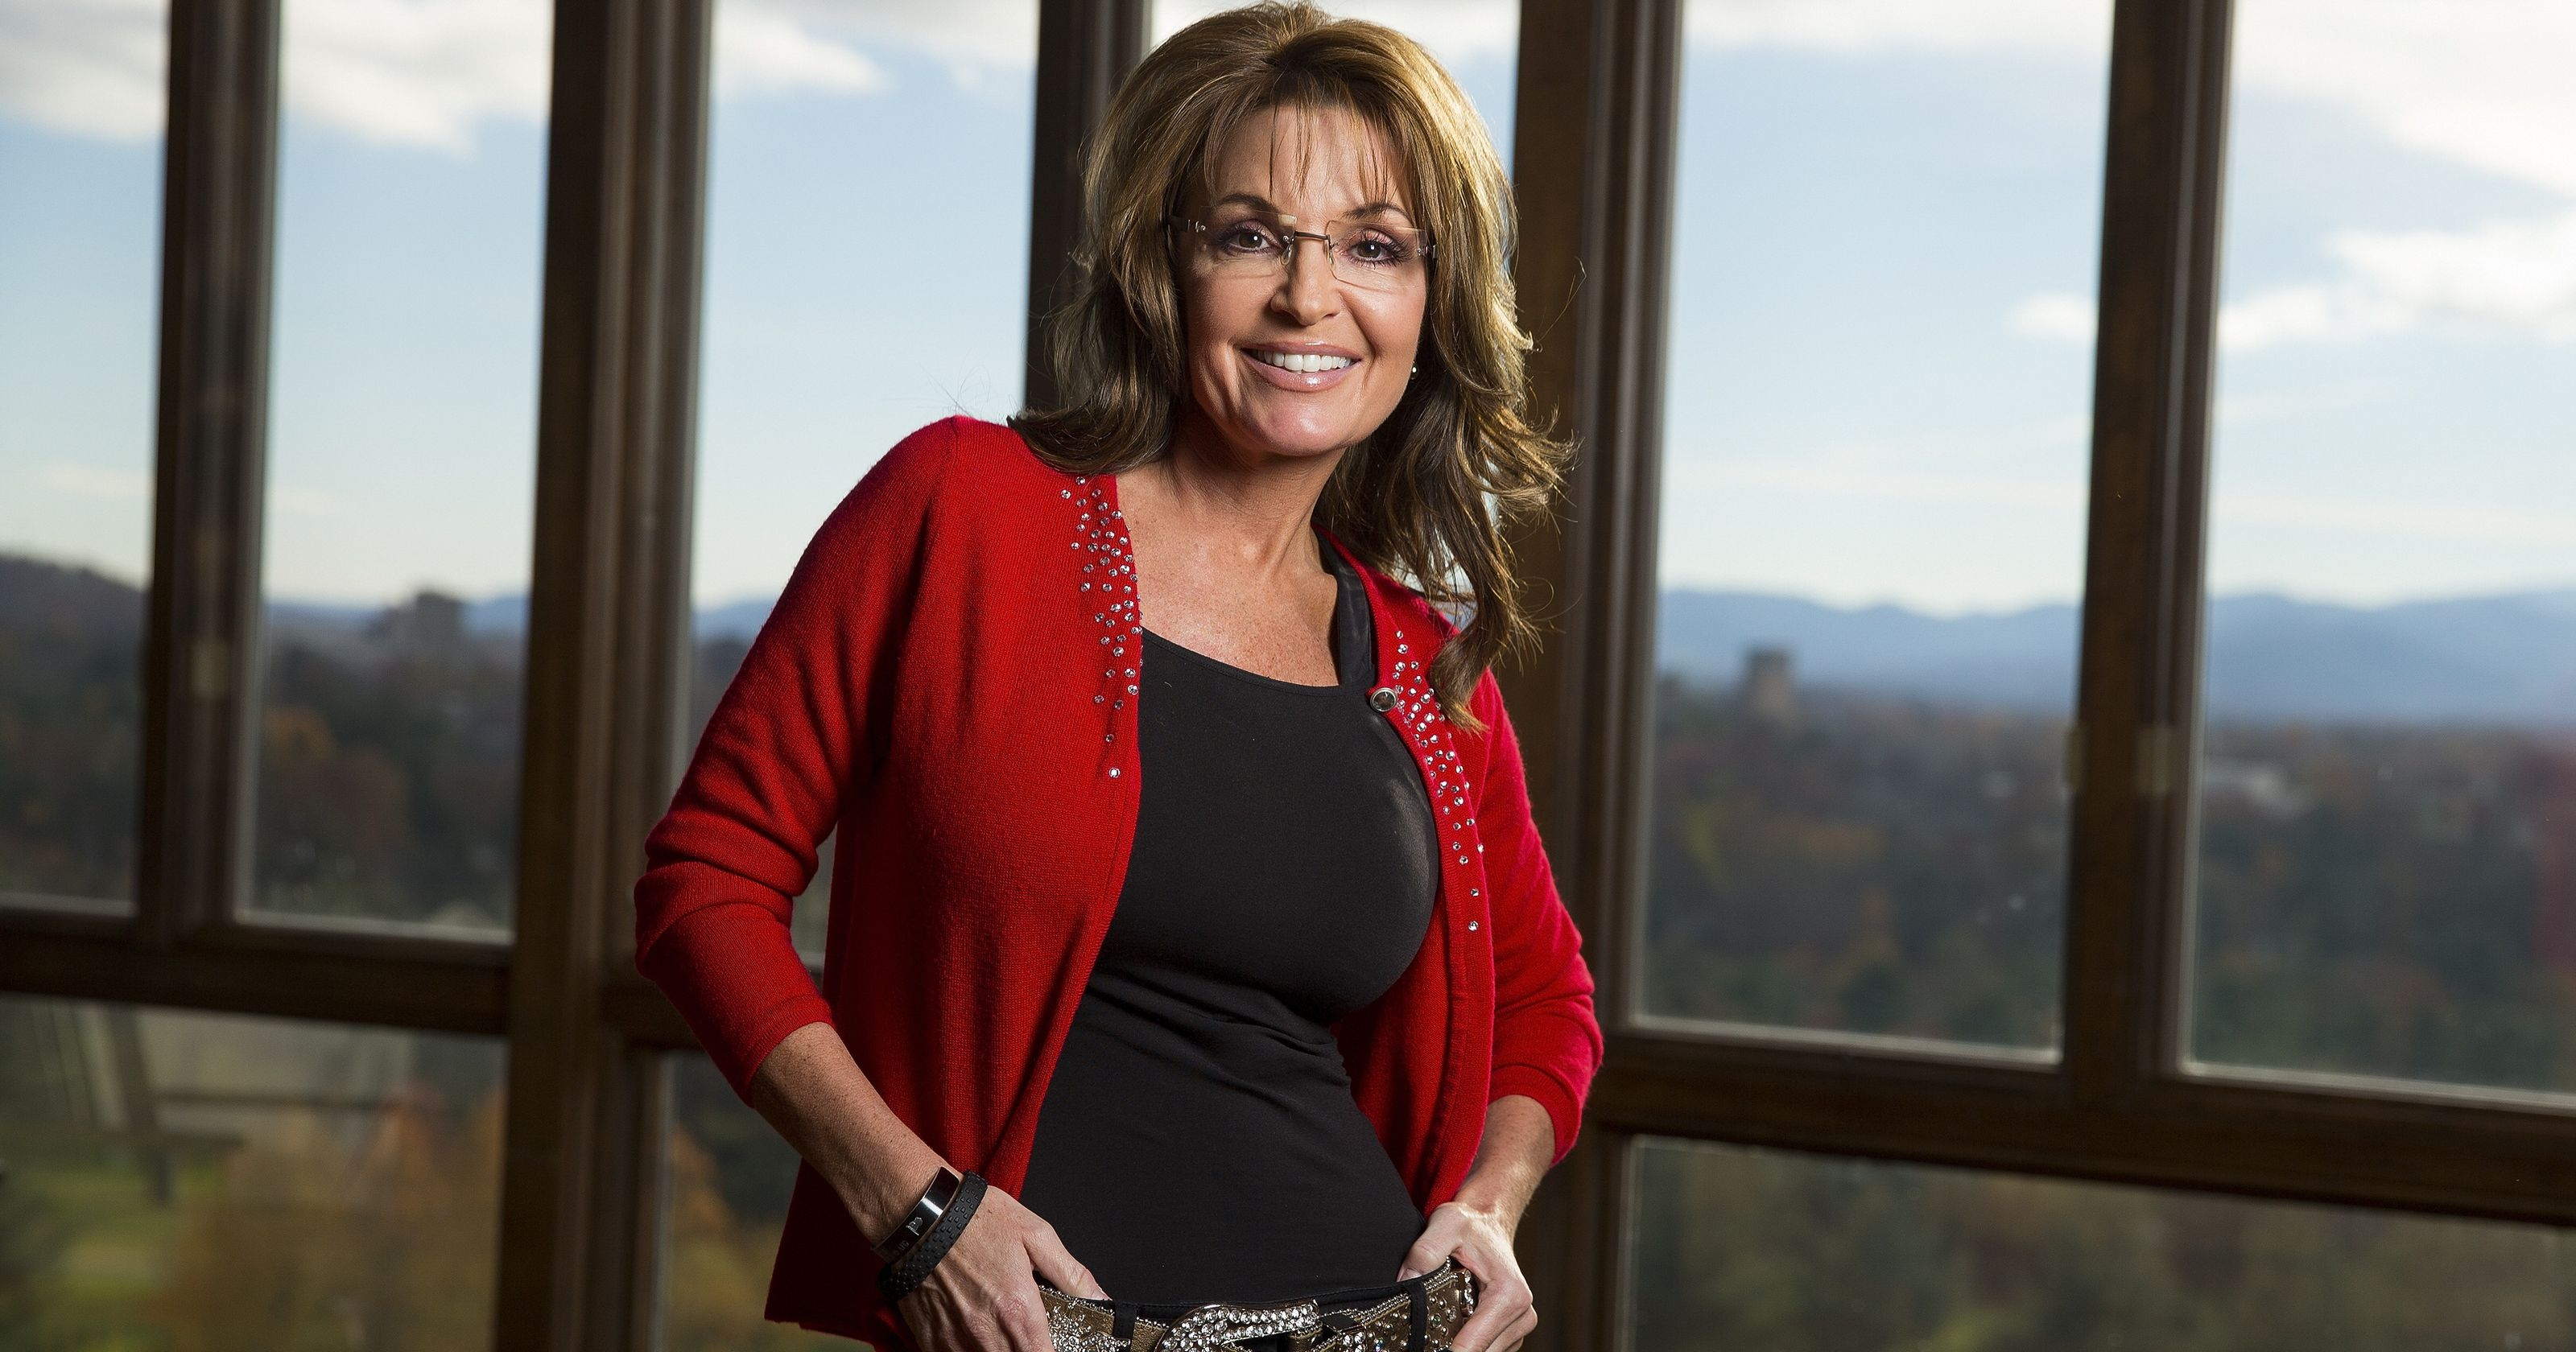 racy pictures of sarah palin